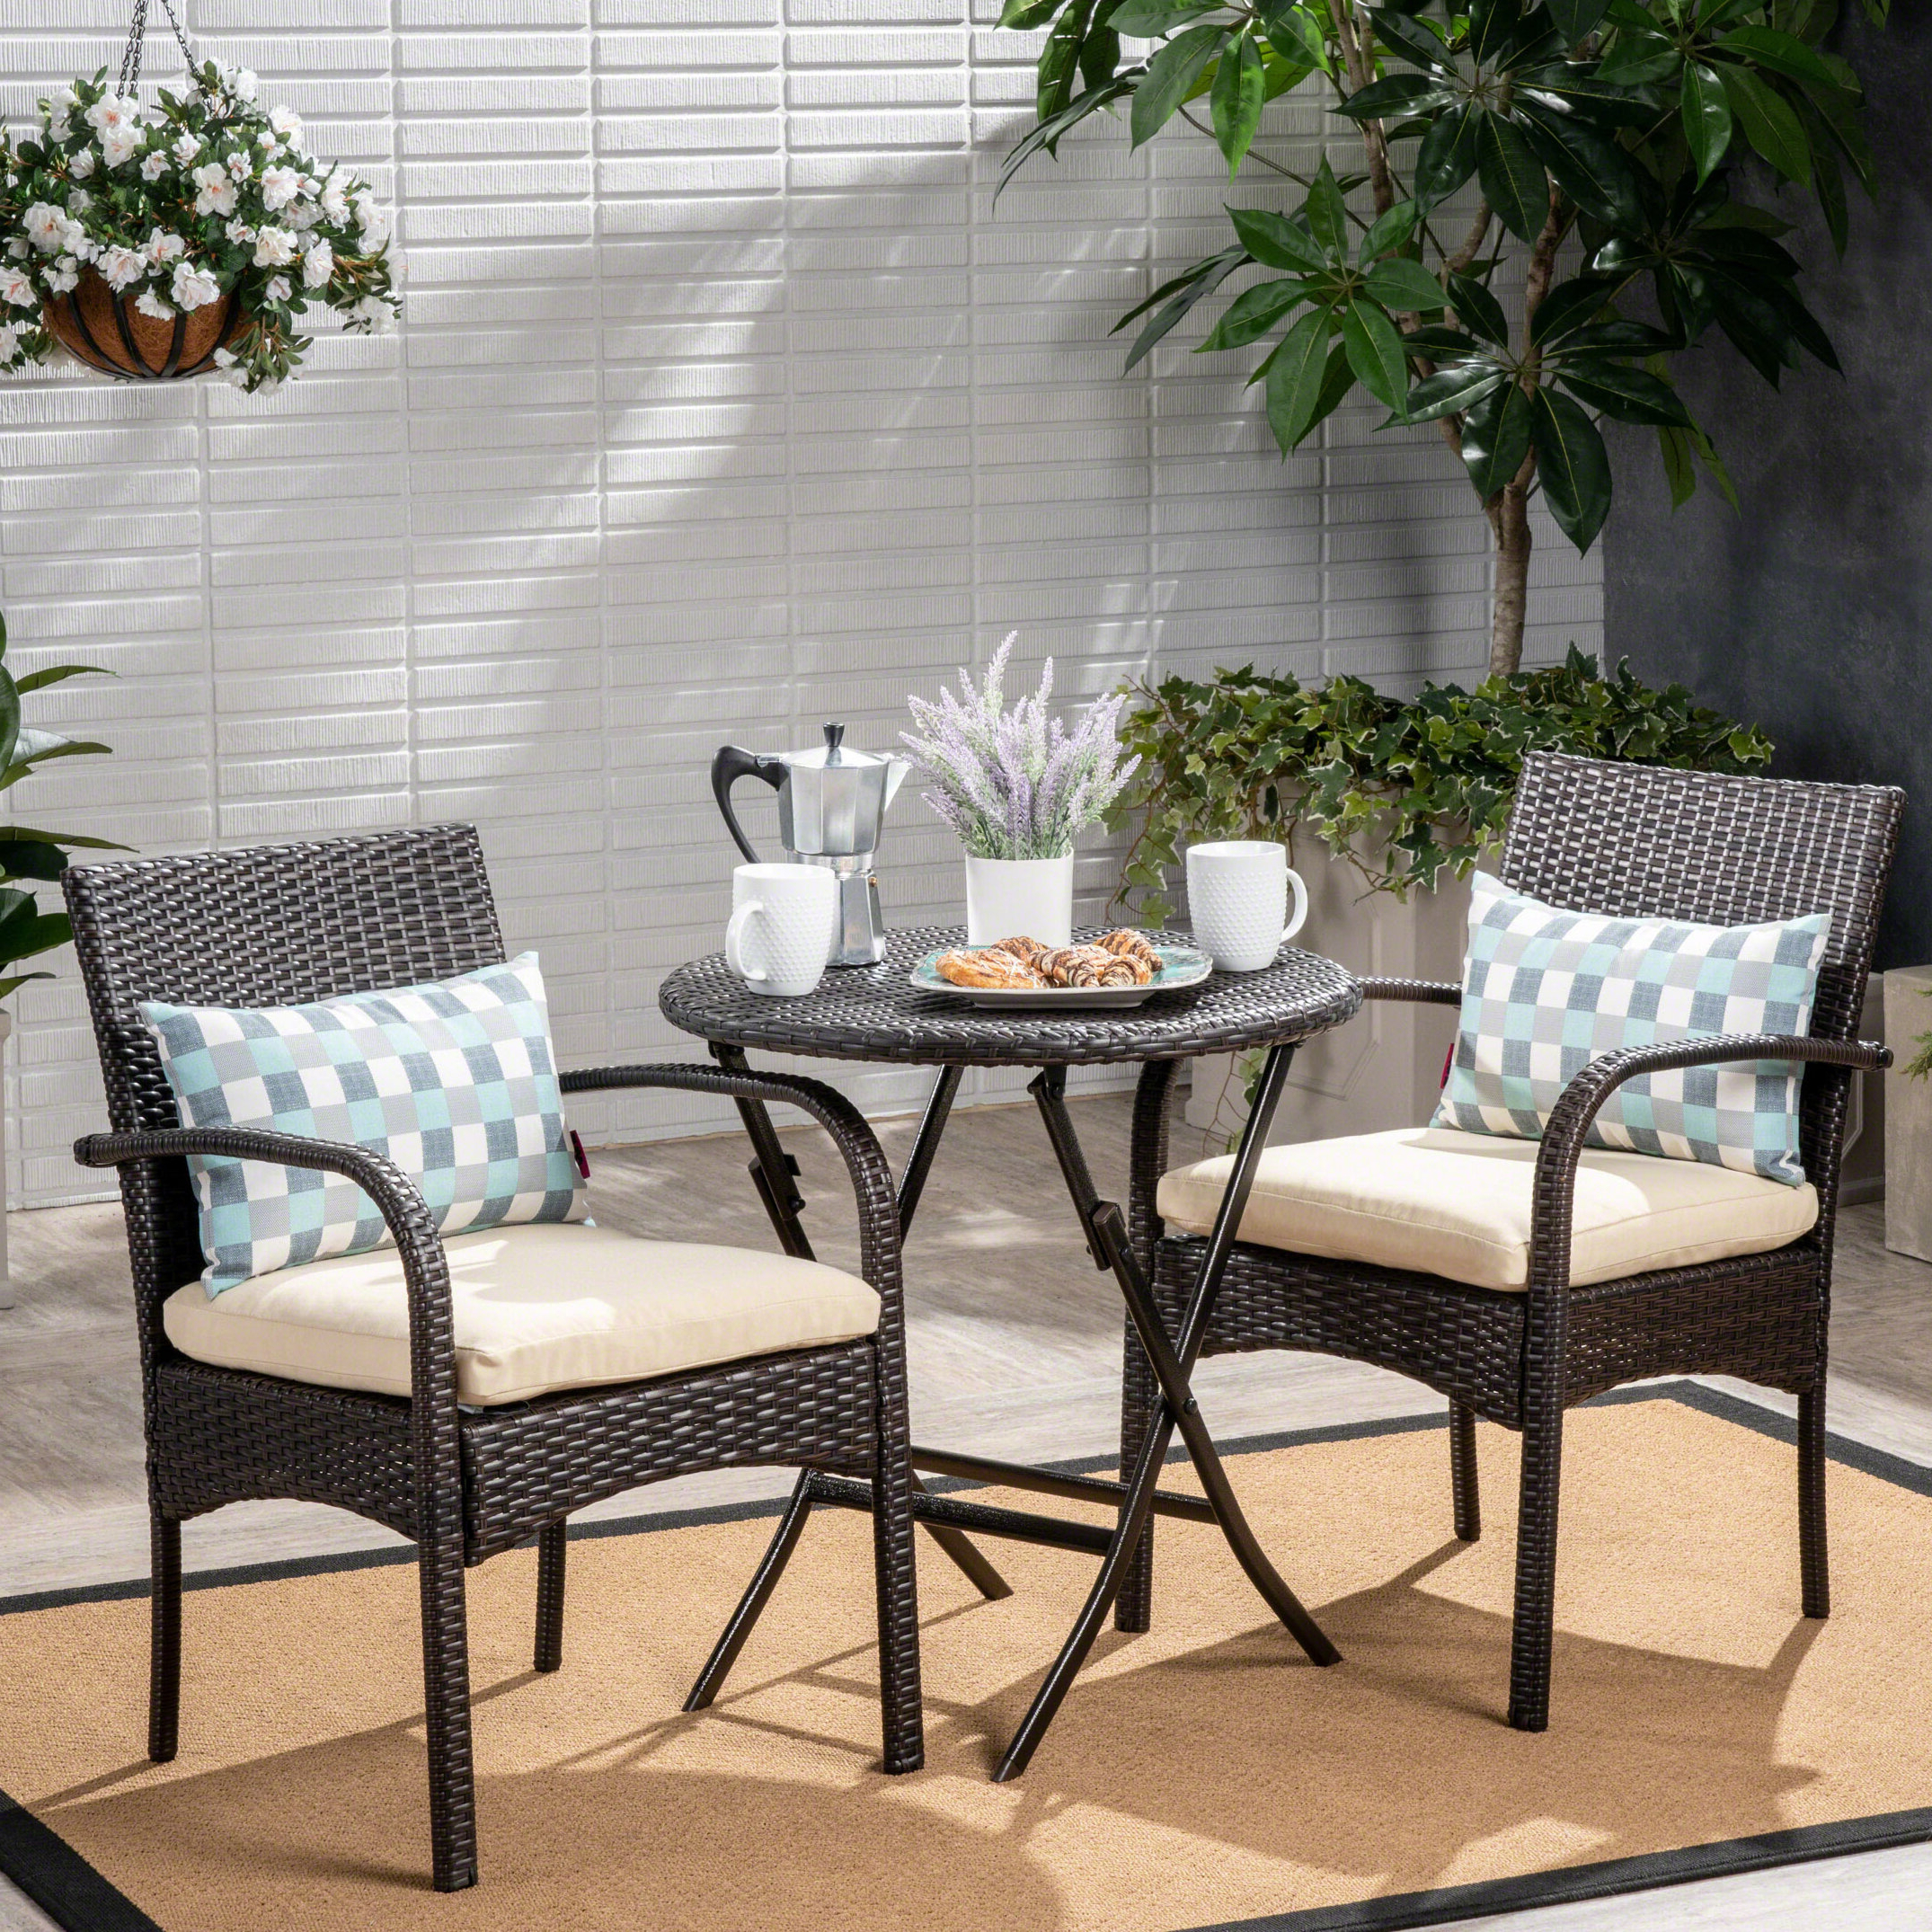 Fashionable 3 Piece Patio Lounger Sets Intended For Dereham Outdoor 3 Piece Bistro Set With Cushions (View 8 of 25)